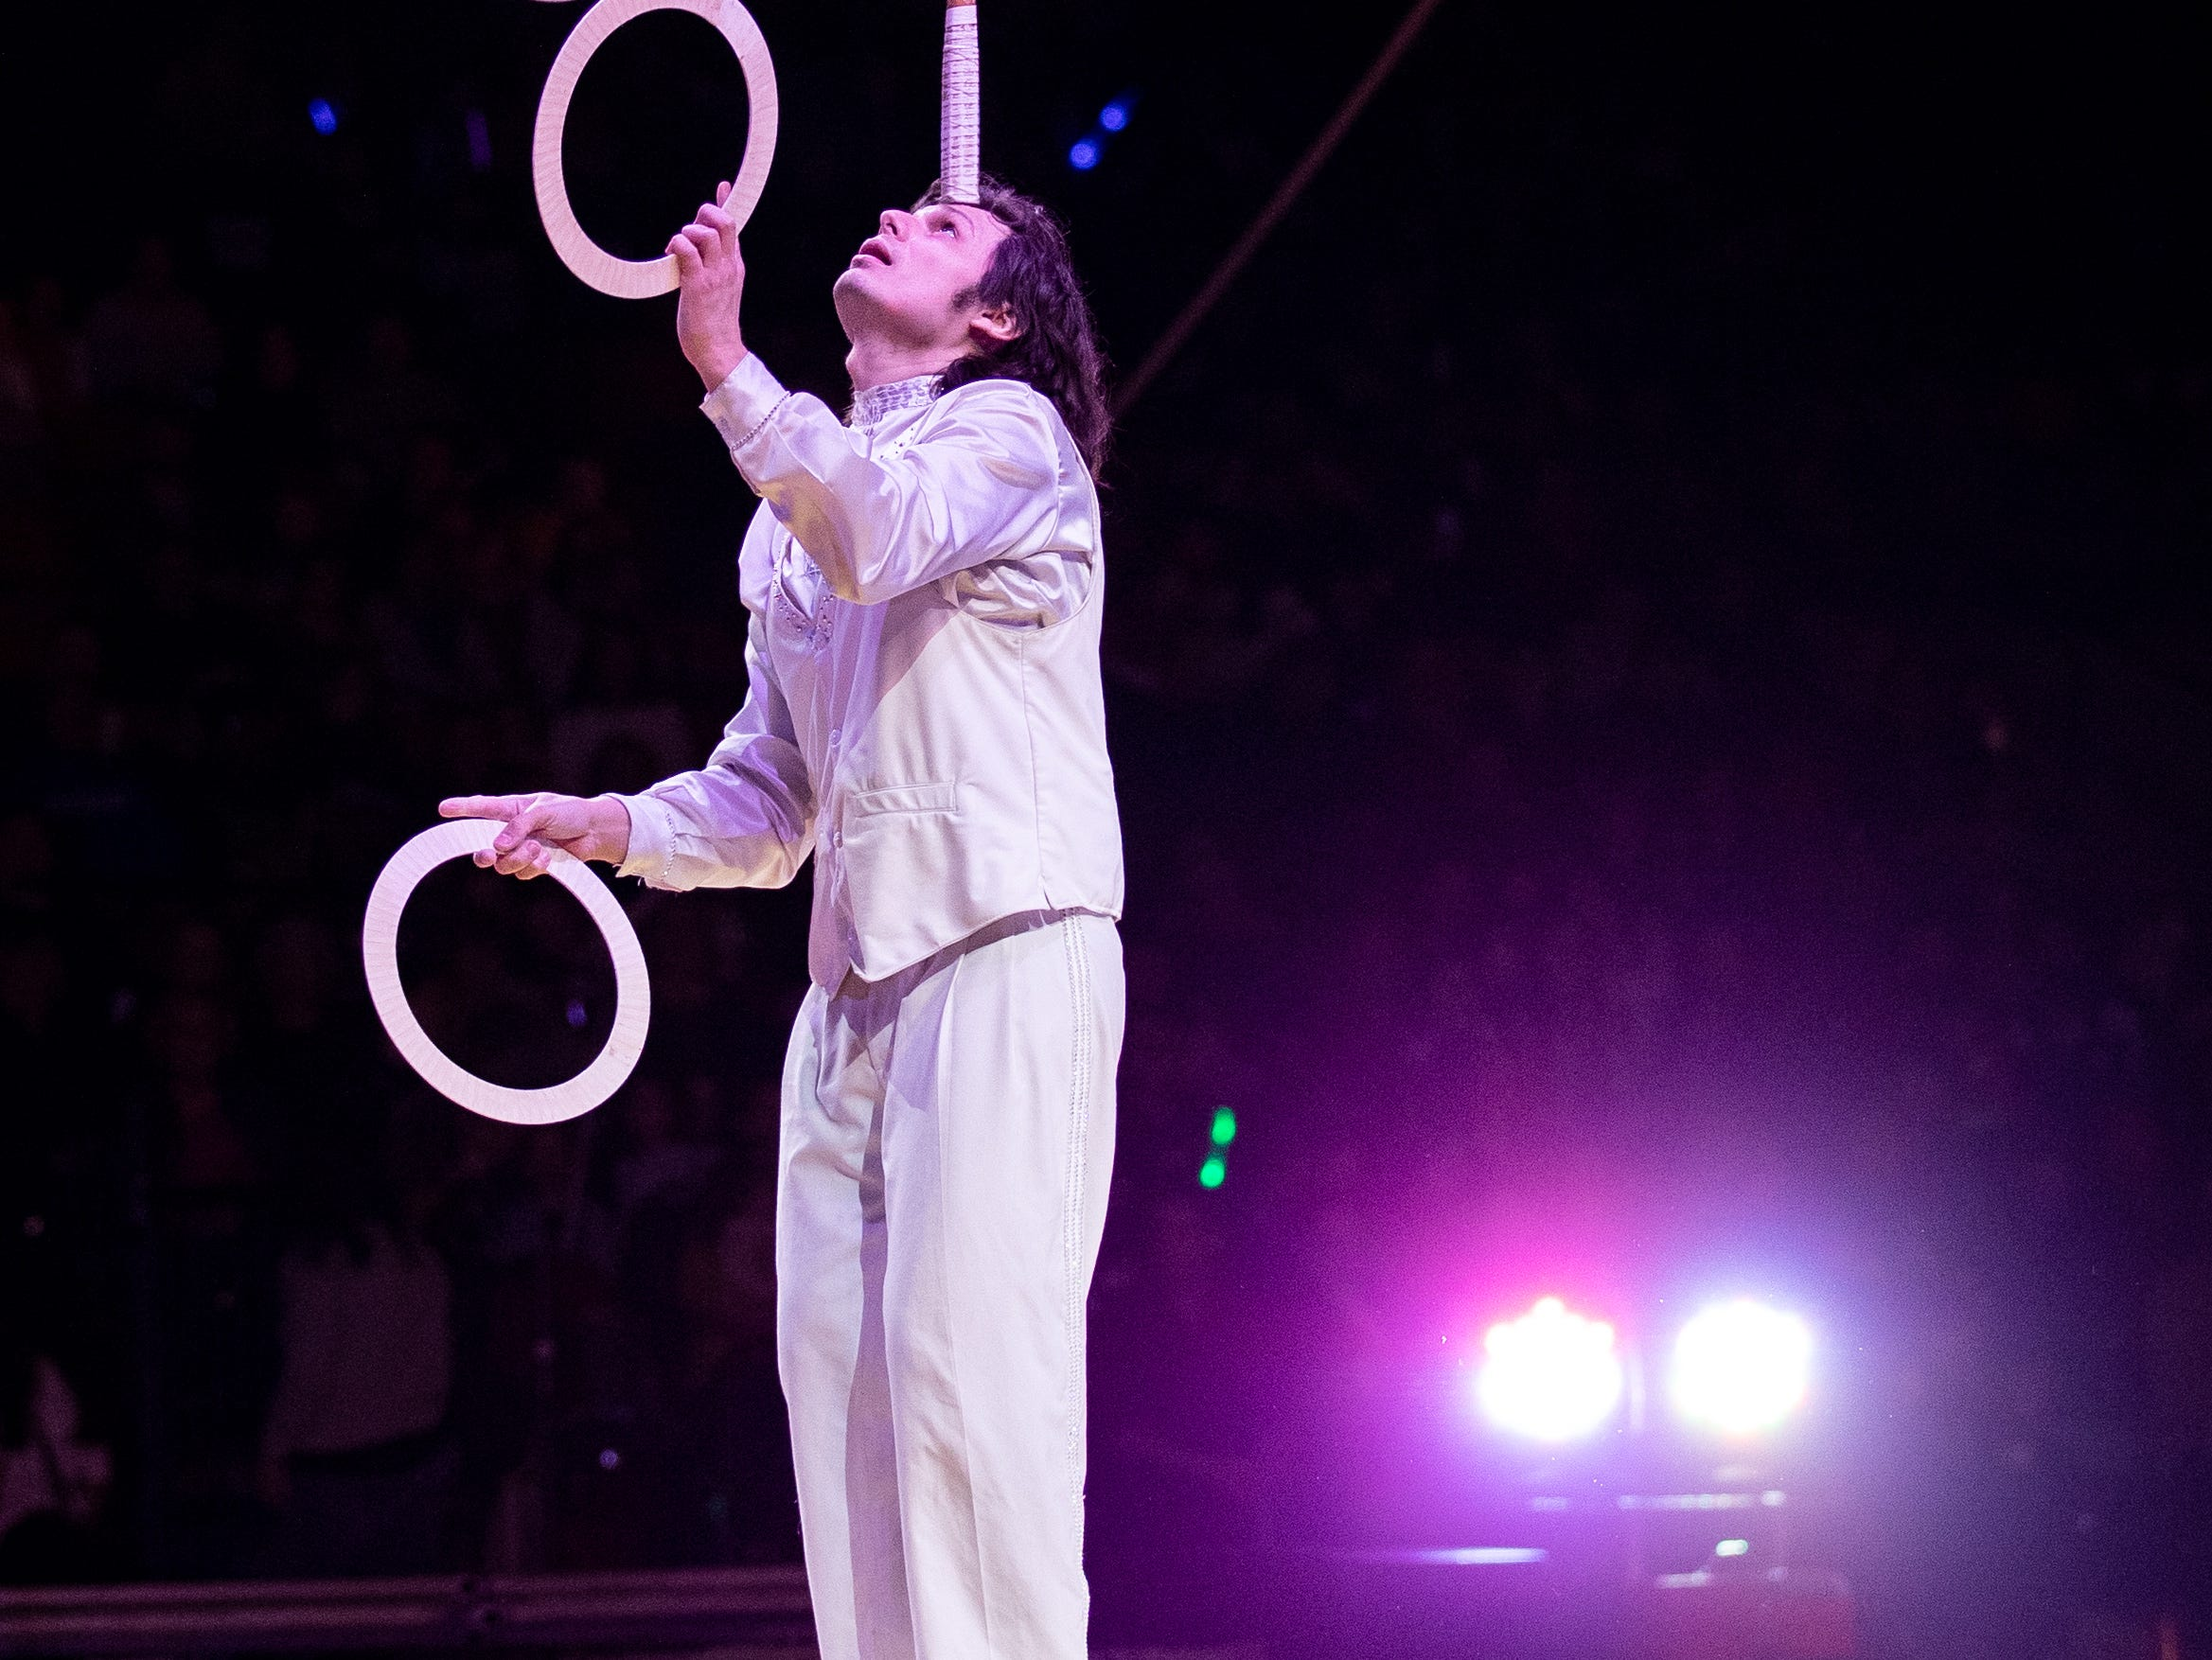 Adding a few more challenges, a juggler balances feet standing on a ball while a racquet and soccer ball teeter on his forehead during the second half of the Kosair Shrine Circus, Saturday, Feb. 9, 2019 in Louisville Ky.